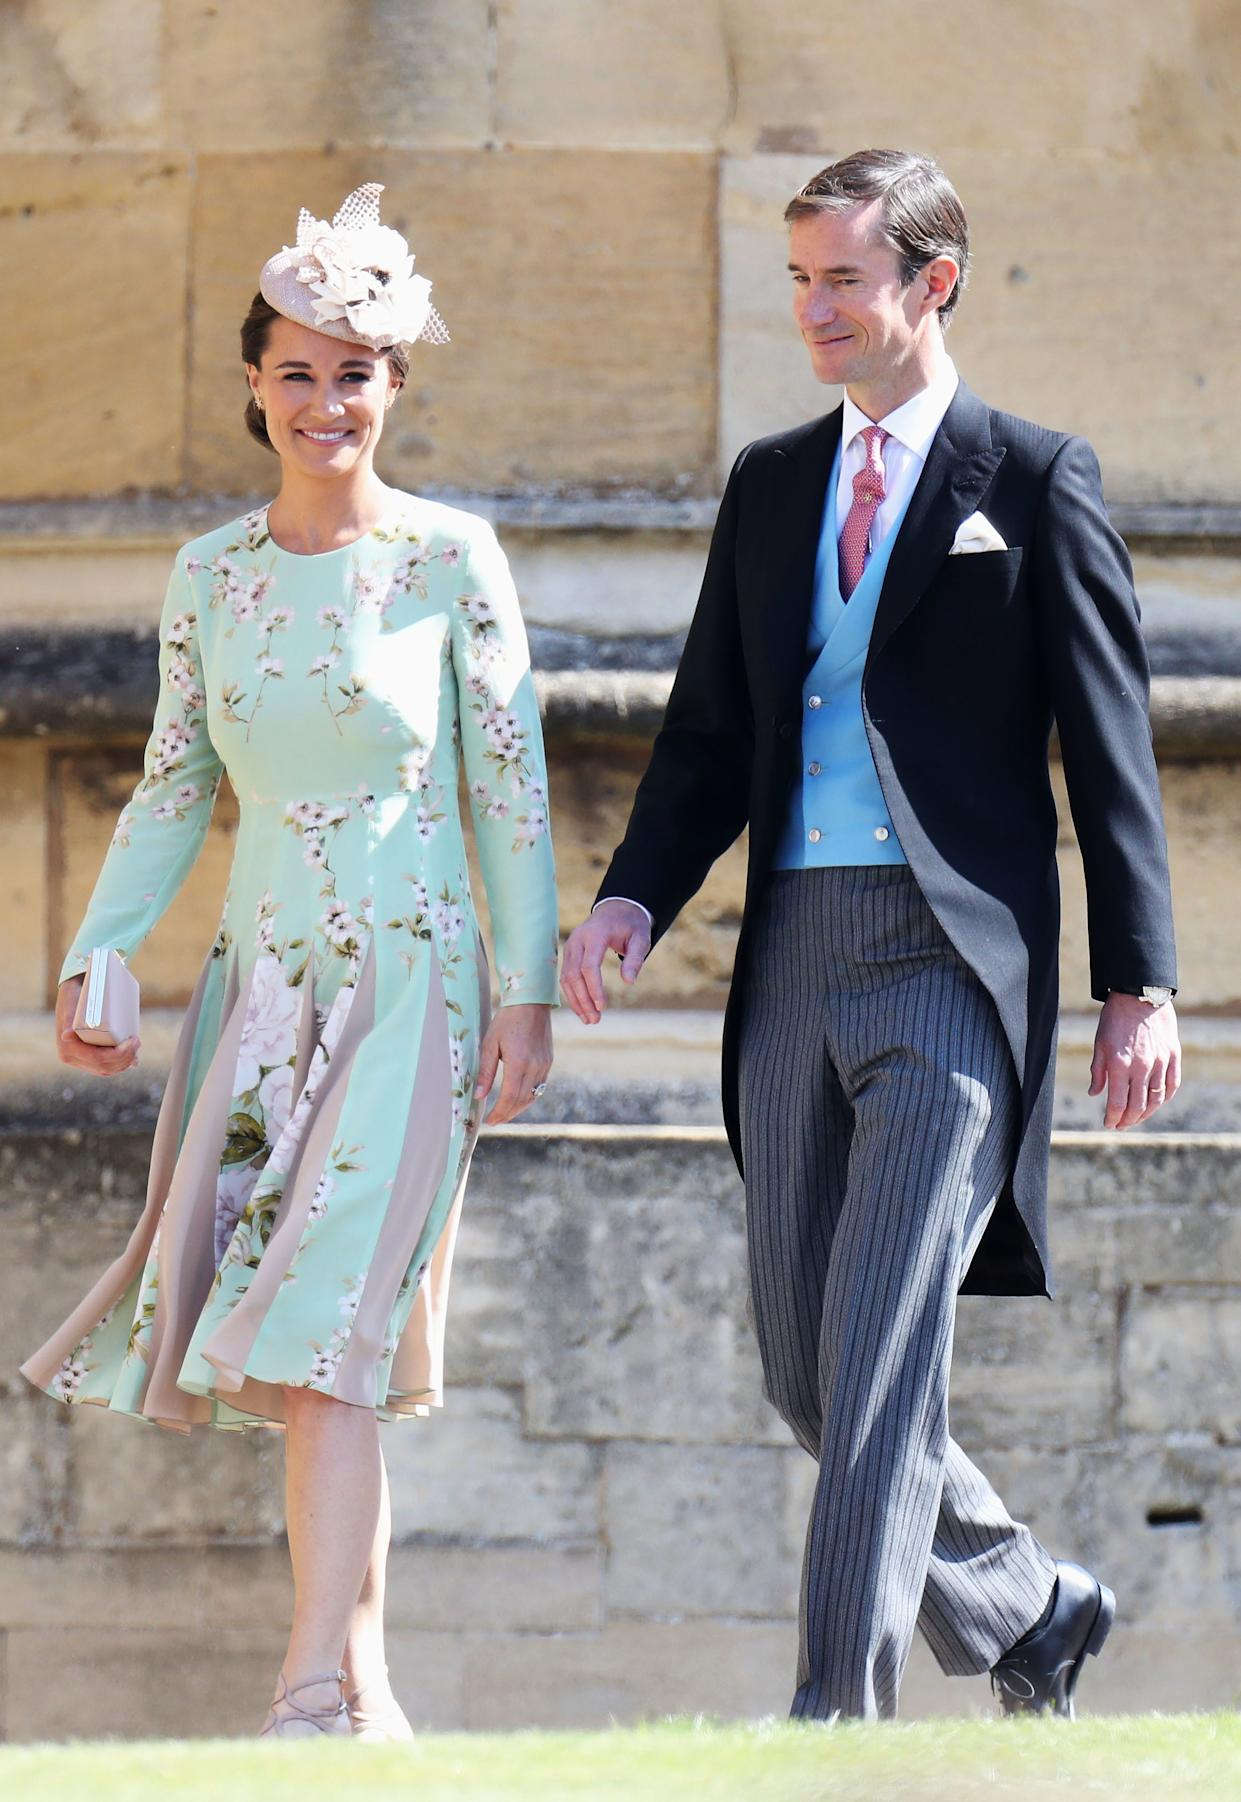 Pippa Middleton and James Matthews arrive at St George's Chapel at Windsor Castle for the wedding of Meghan Markle and Prince Harry.